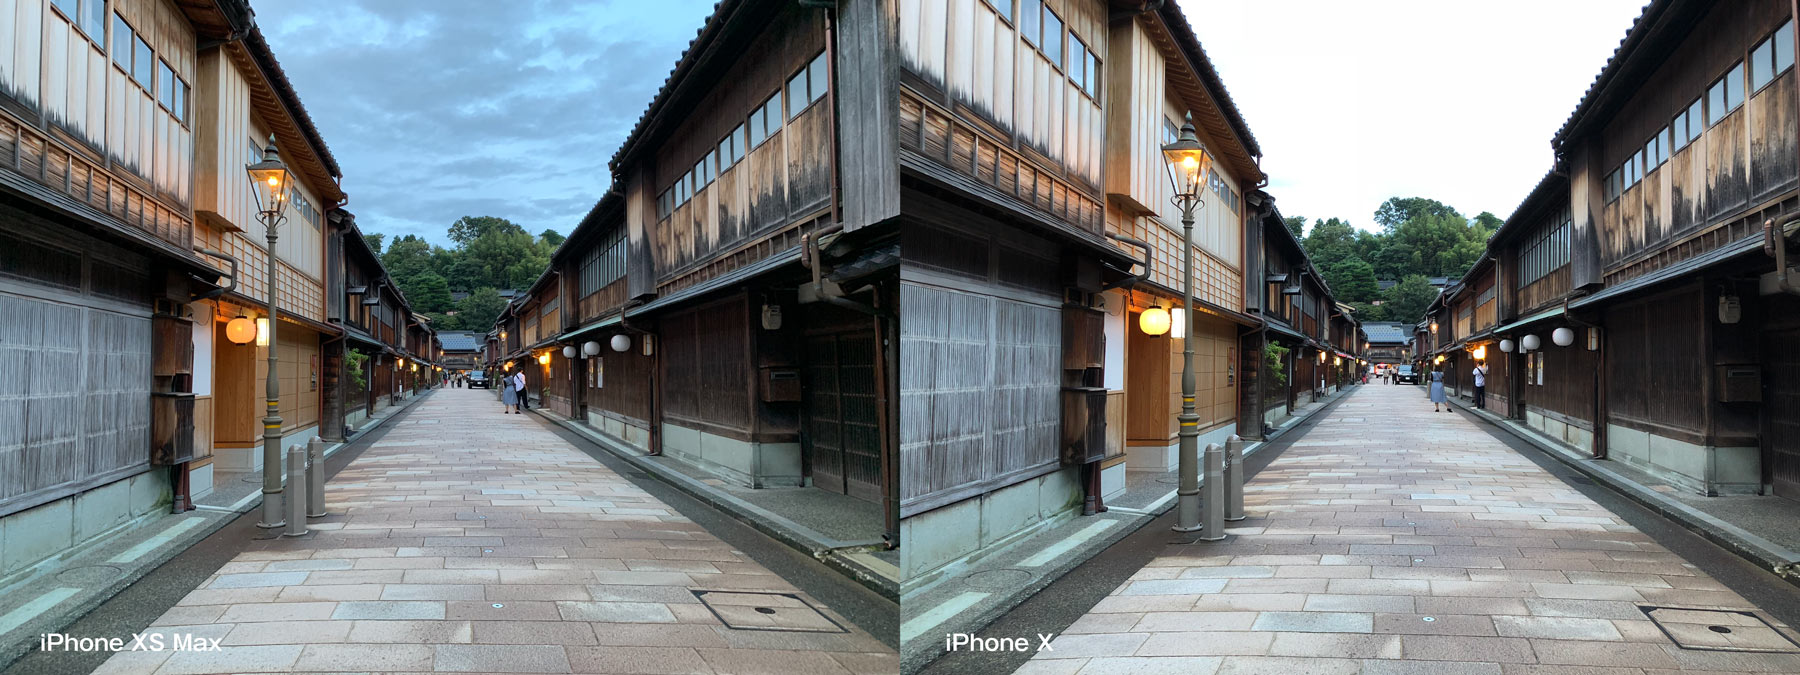 iPhone XS MaxとiPhone X カメラ比較 HDR1